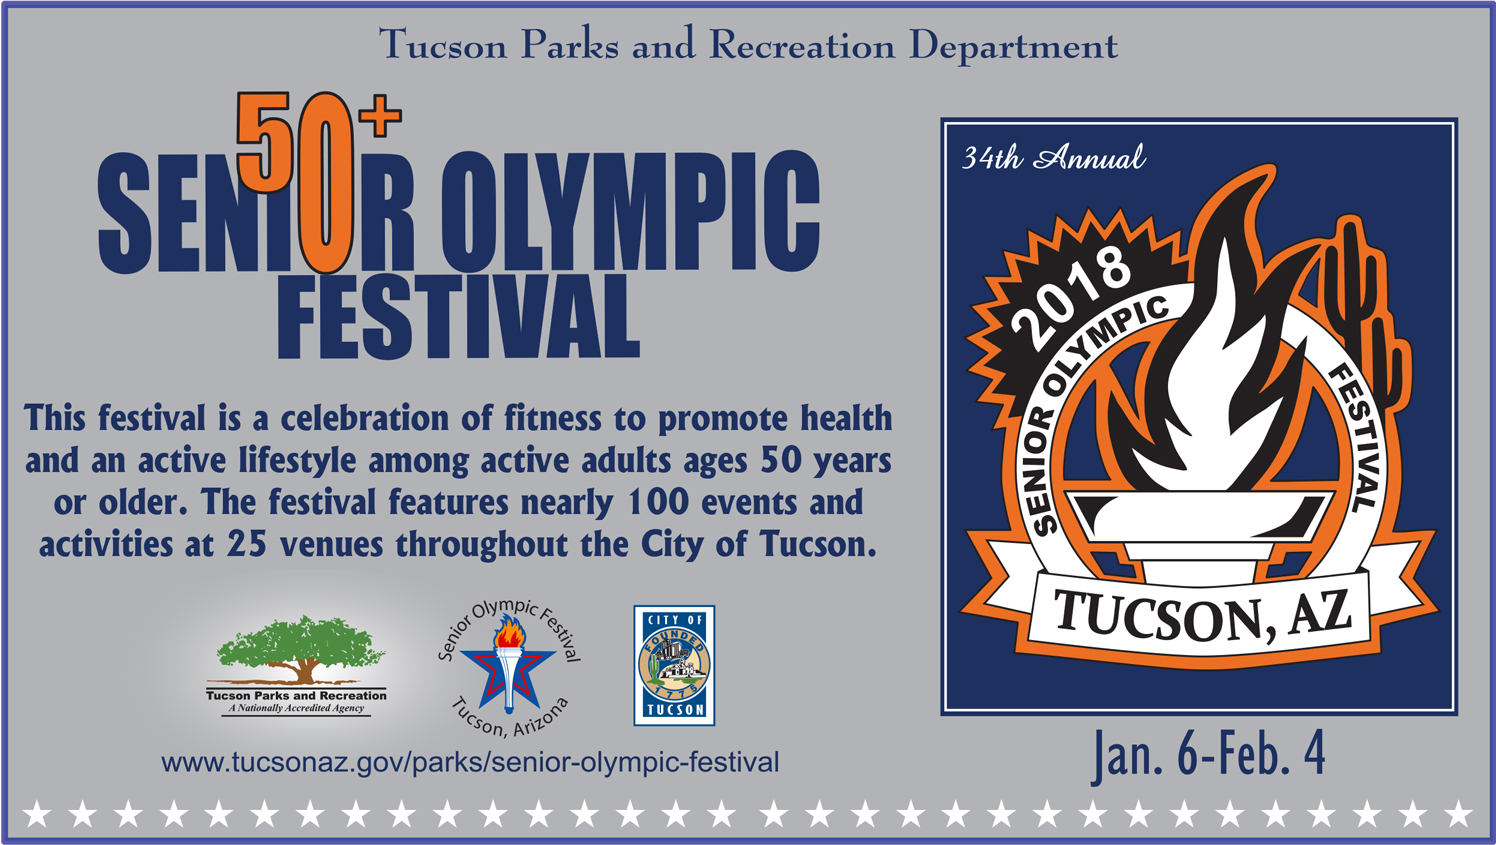 tucson parks and recreation official website of the city of tucson